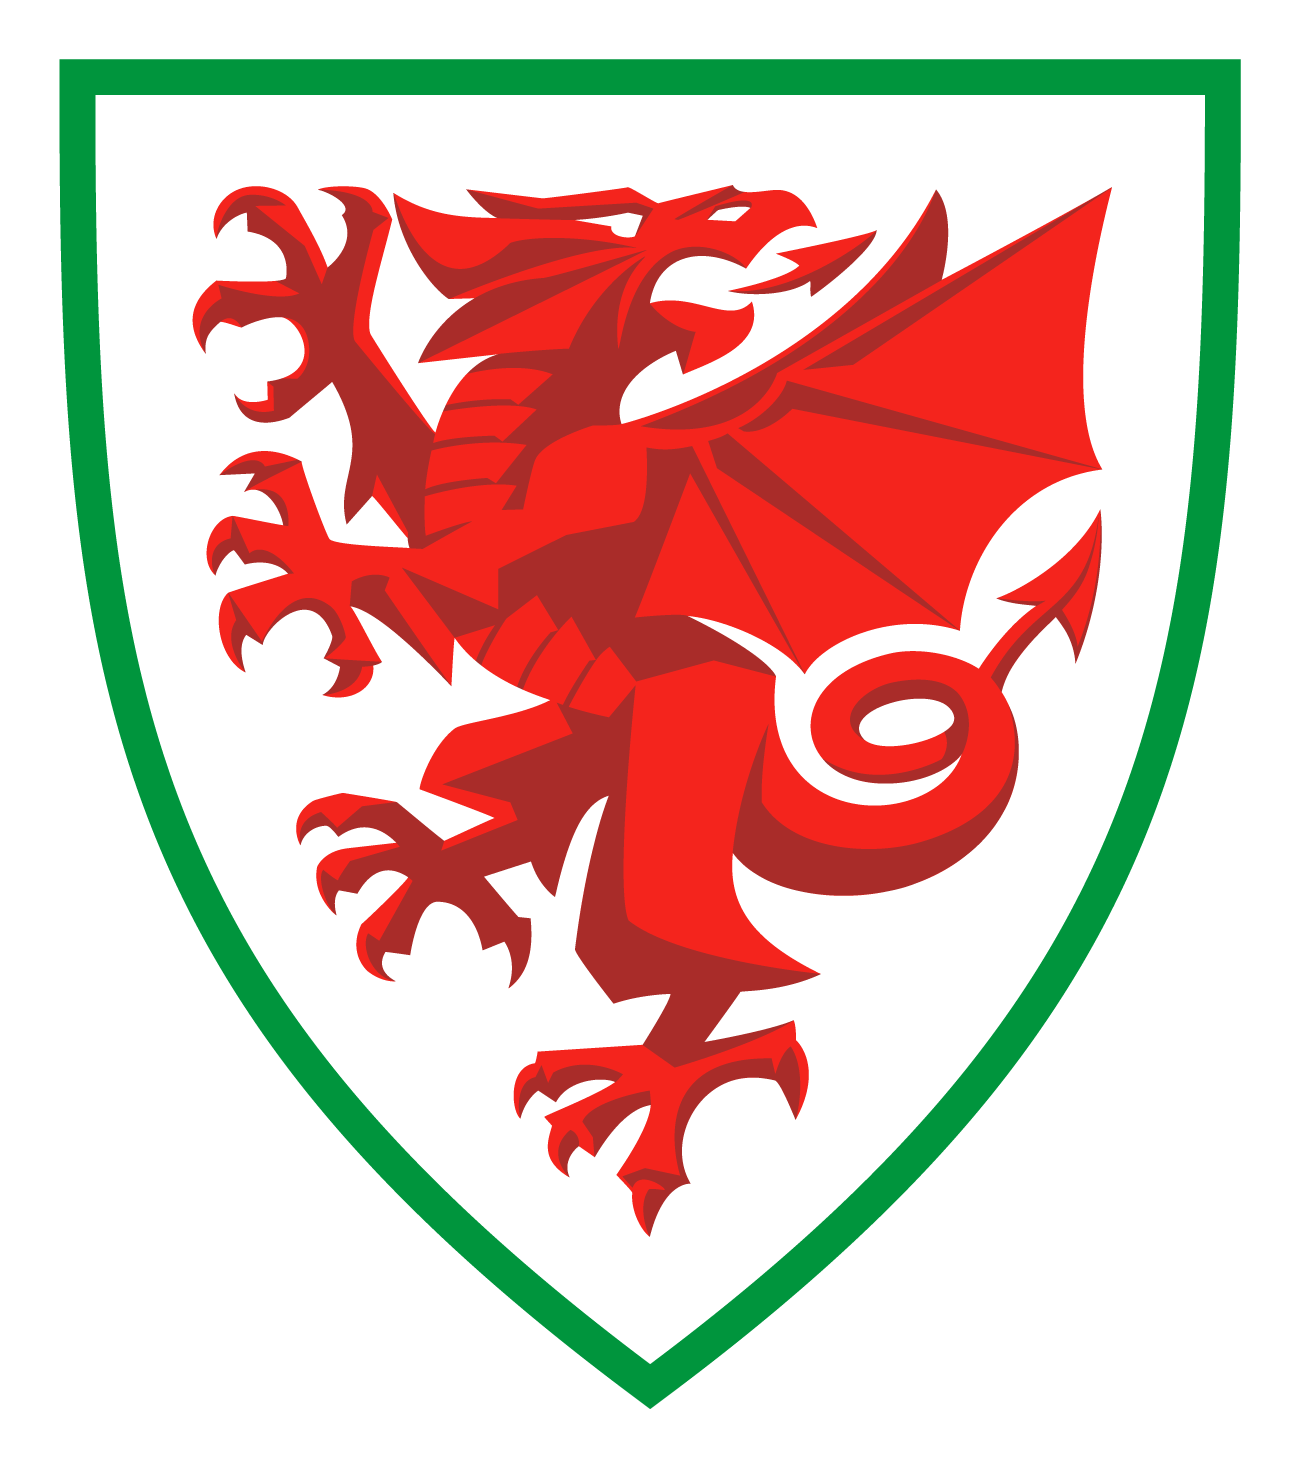 WALES_MAIN_TEAM_BADGE_DRAGON_SHIELD_sRGB.png